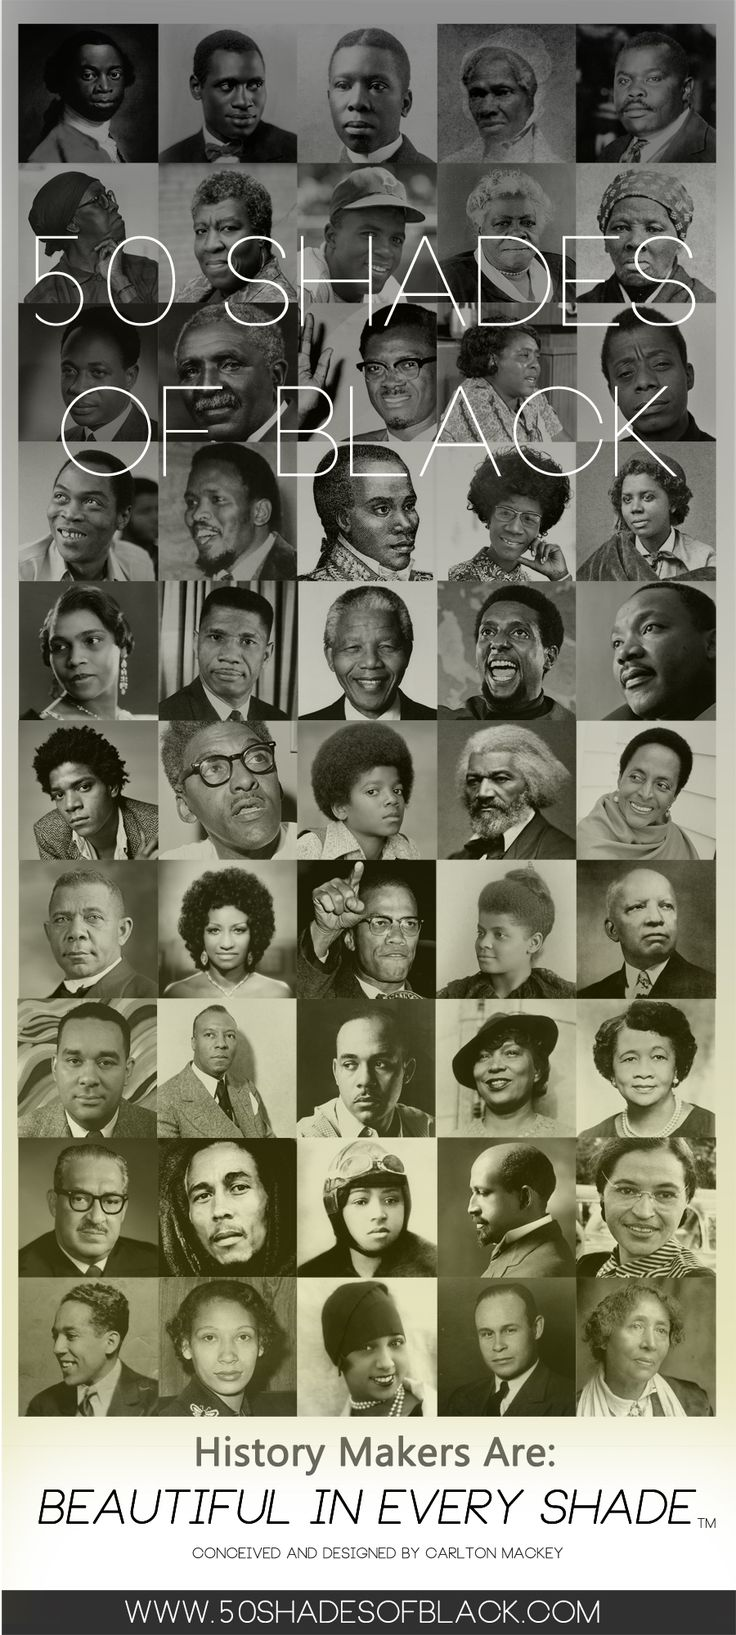 """50 SHADES OF BLACK Presents: History Makers -a 2014 Black History Month  Tribute Poster Created by Carlton Mackey celebrating the vast diversity of  the contributions to history and the people who made it. """"Beautiful In  Every Shade"""" is a trademark of Carlton Mackey (Creator of 50 Shades of  Black) and may not be appropriated in any way other than the specified use  of the trademark owner. http://www.50shadesofblack.com"""